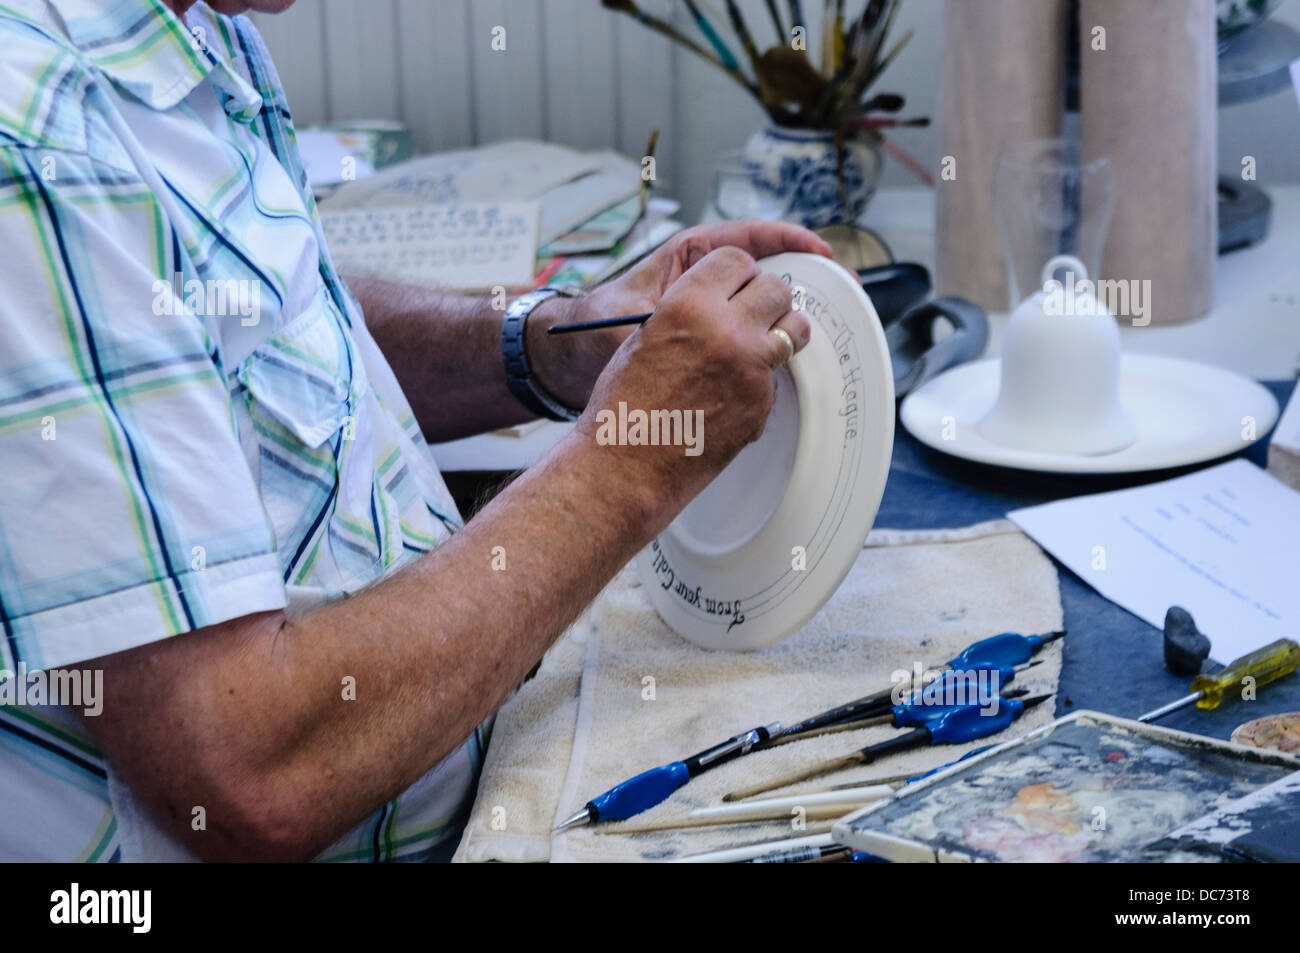 Delft, Netherlands. 5th August 2013 - Potters make and paint traditional blue and white Delft Pottery - Stock Image